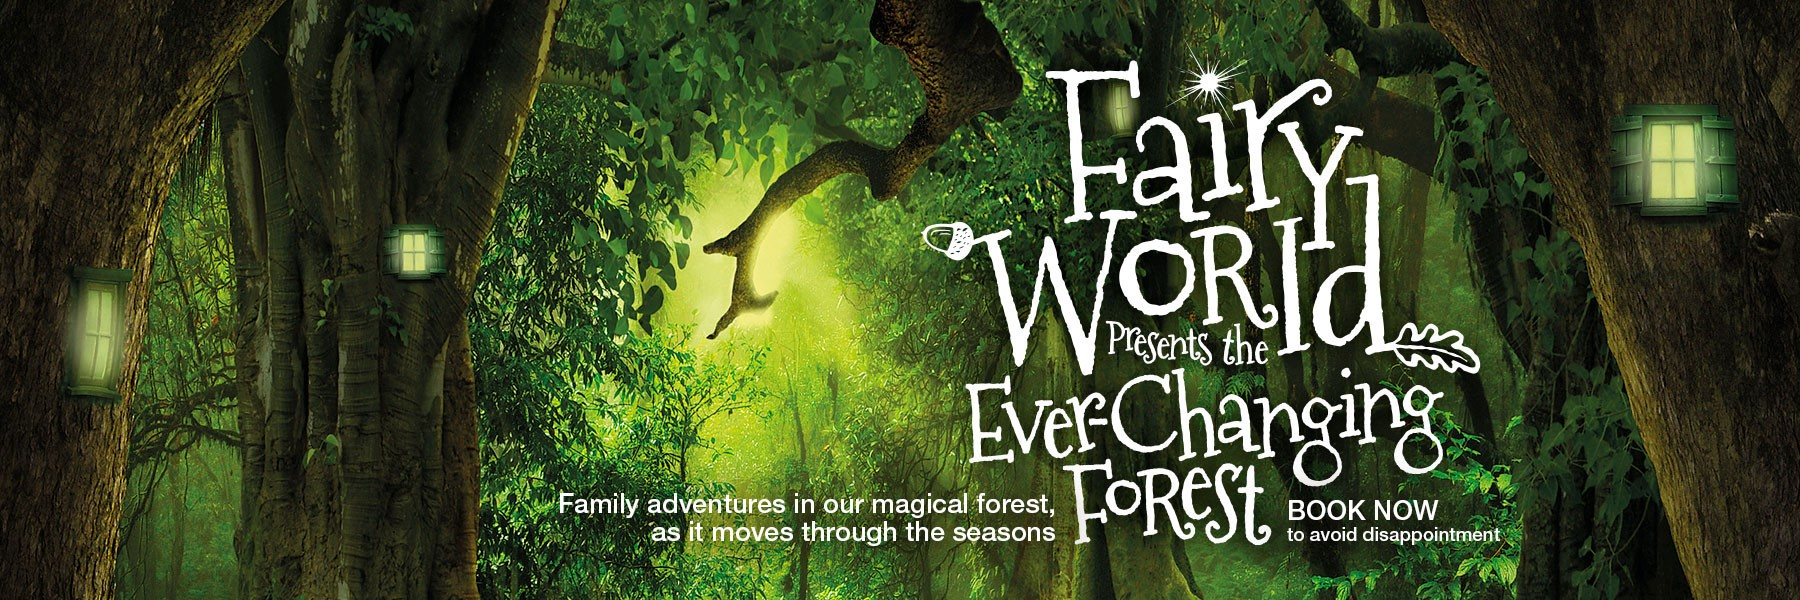 Fairy World Ever changing Forest